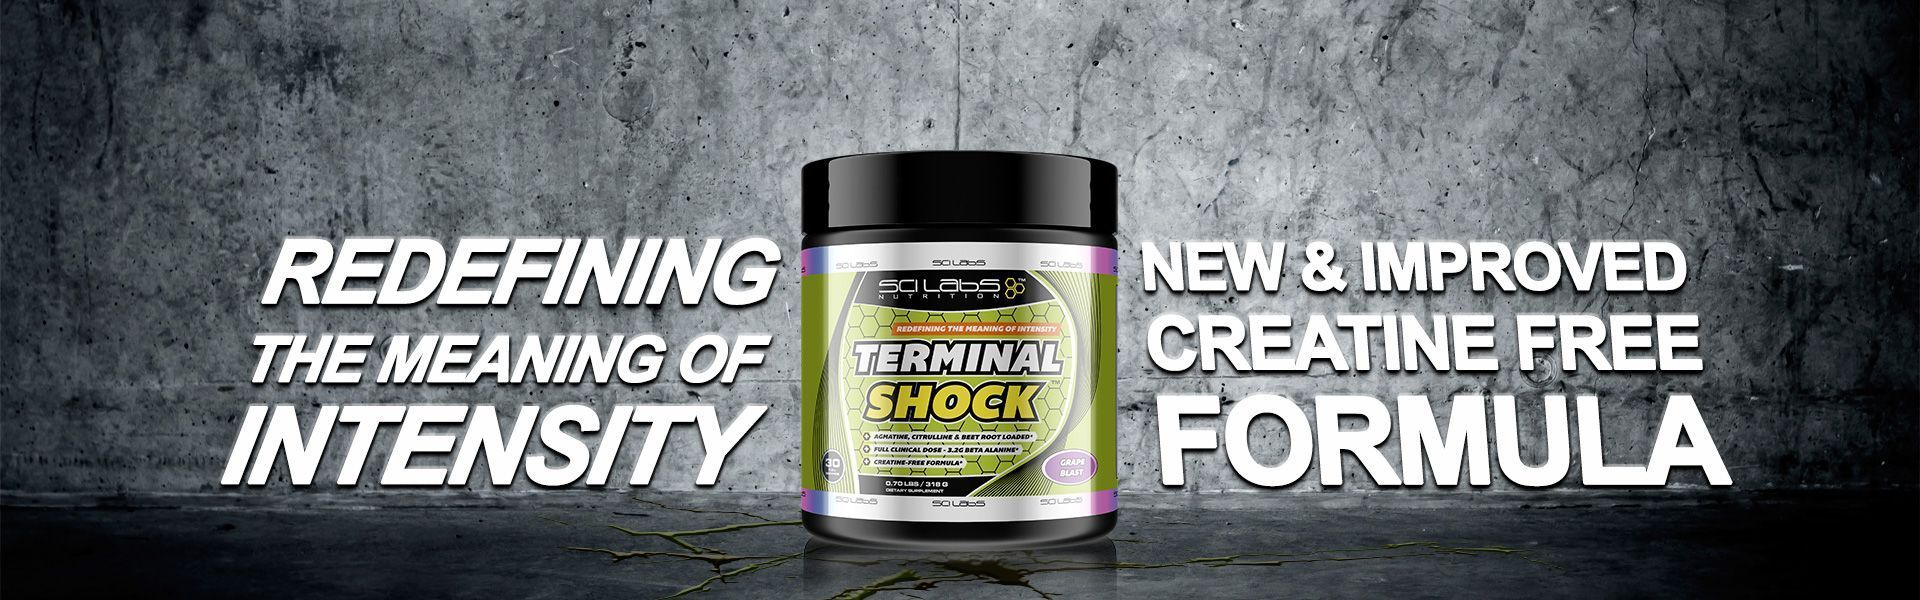 Terminal Shock - The All new Scilabs Nutrition Pre-Workout